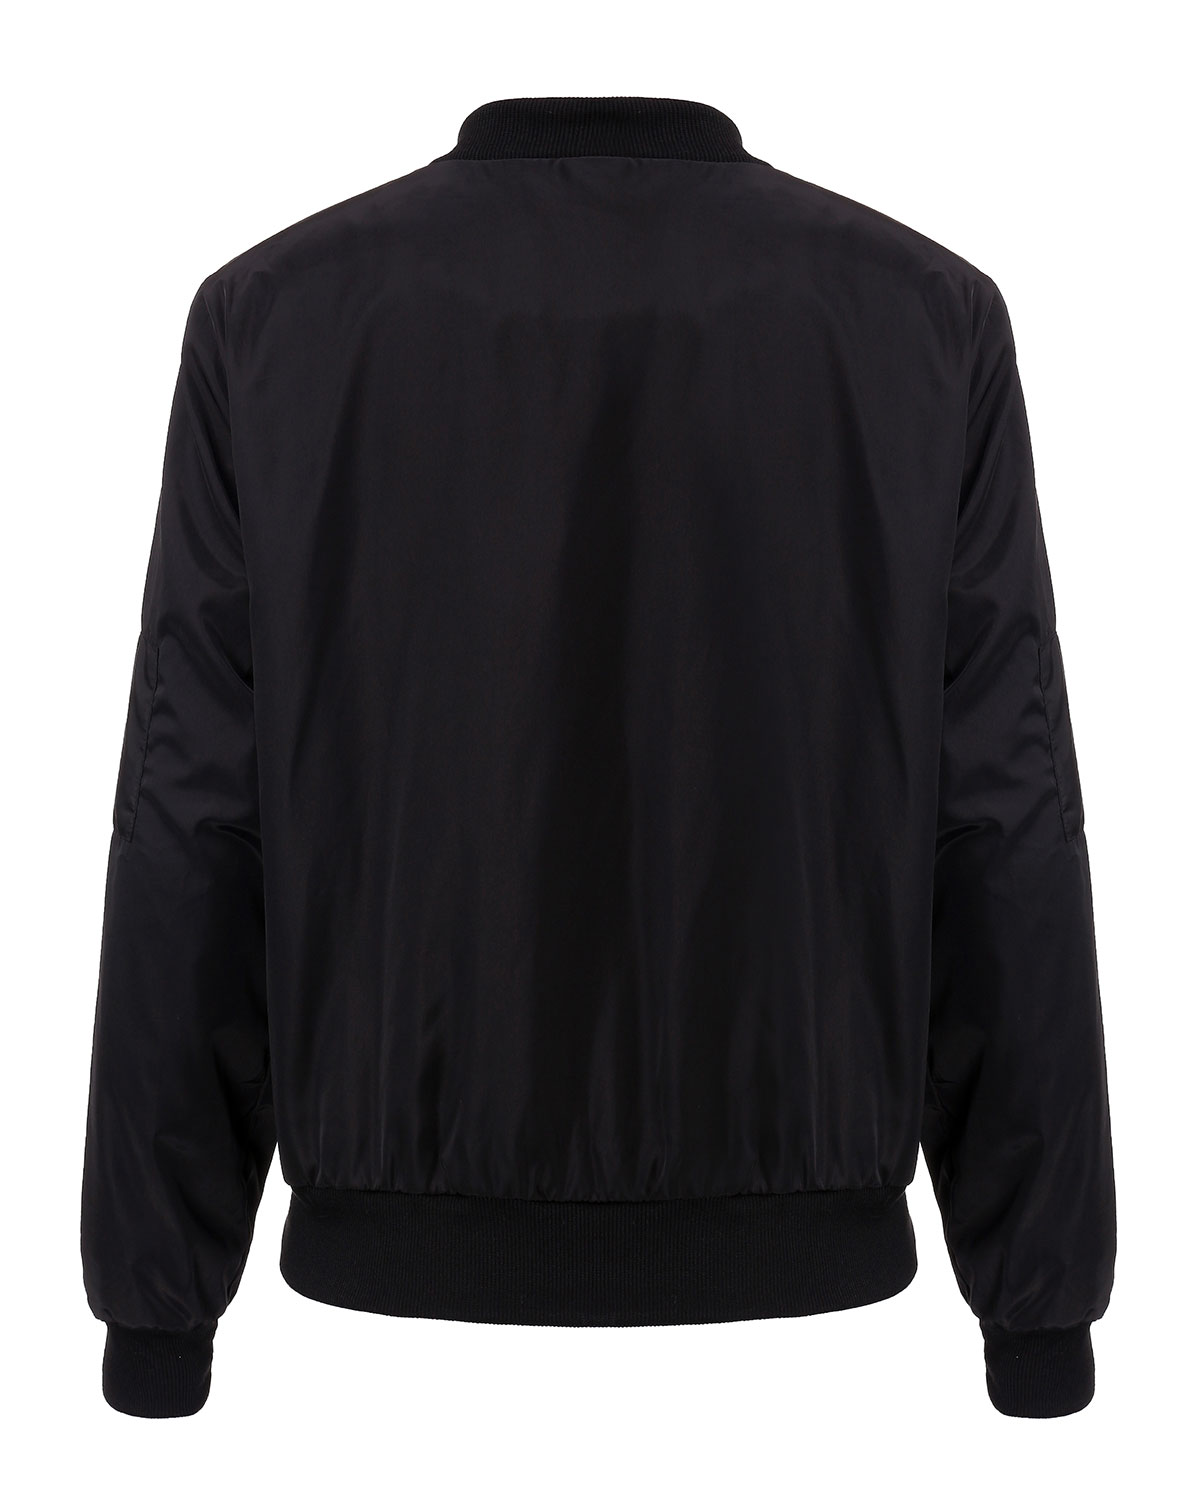 Thin Type Womens Bomber Jacket - KWNSHOP